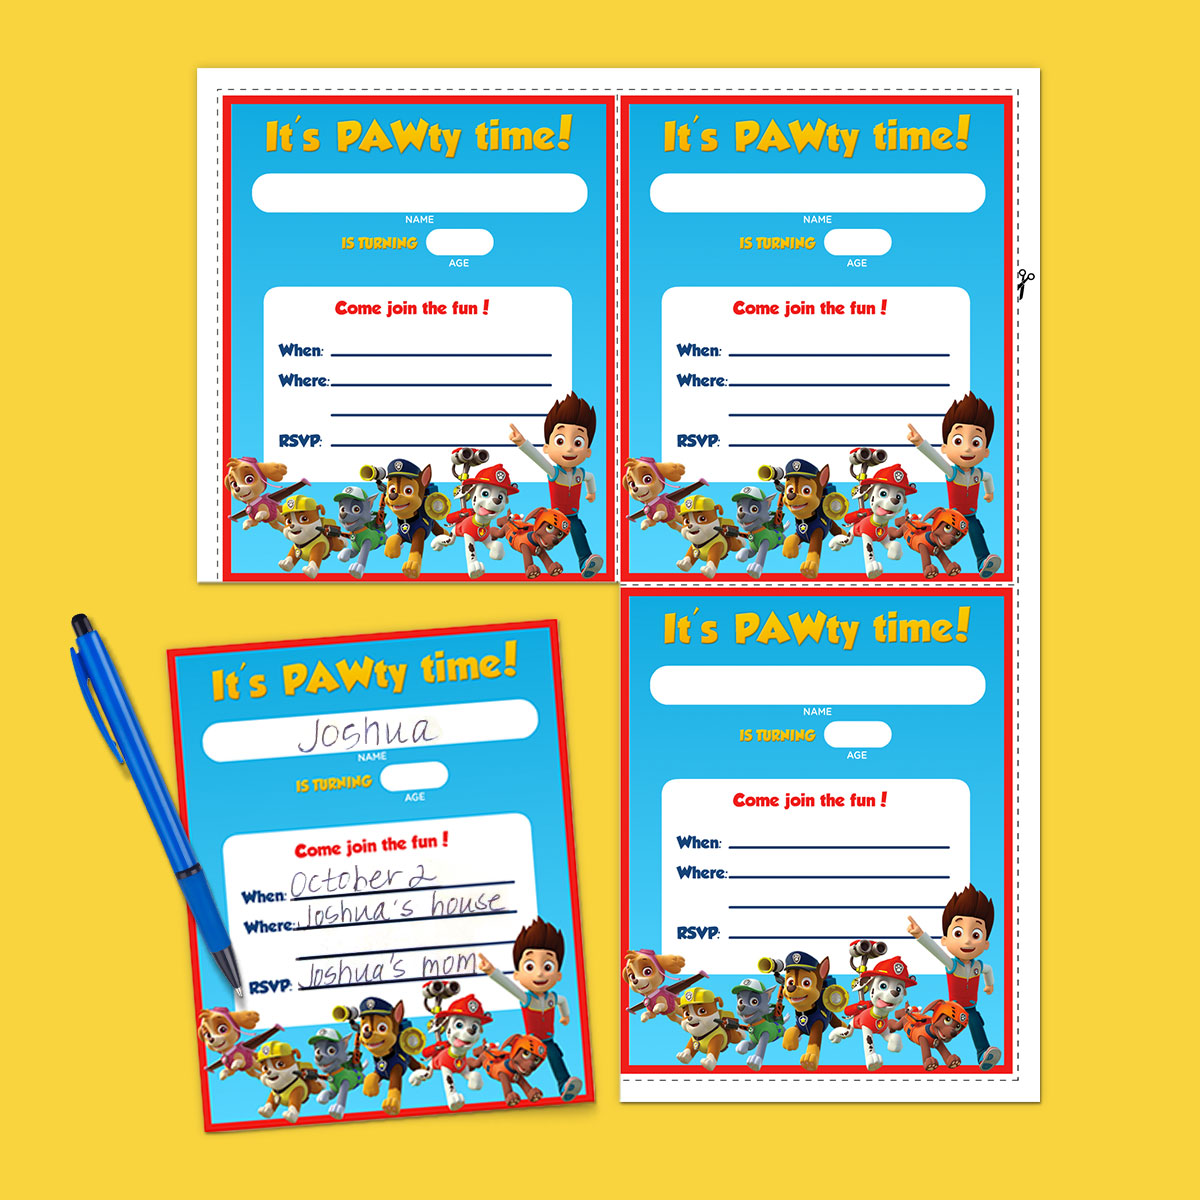 PAW Patrol Birthday Party Invitations Nickelodeon Parents - Paw patrol invitation template